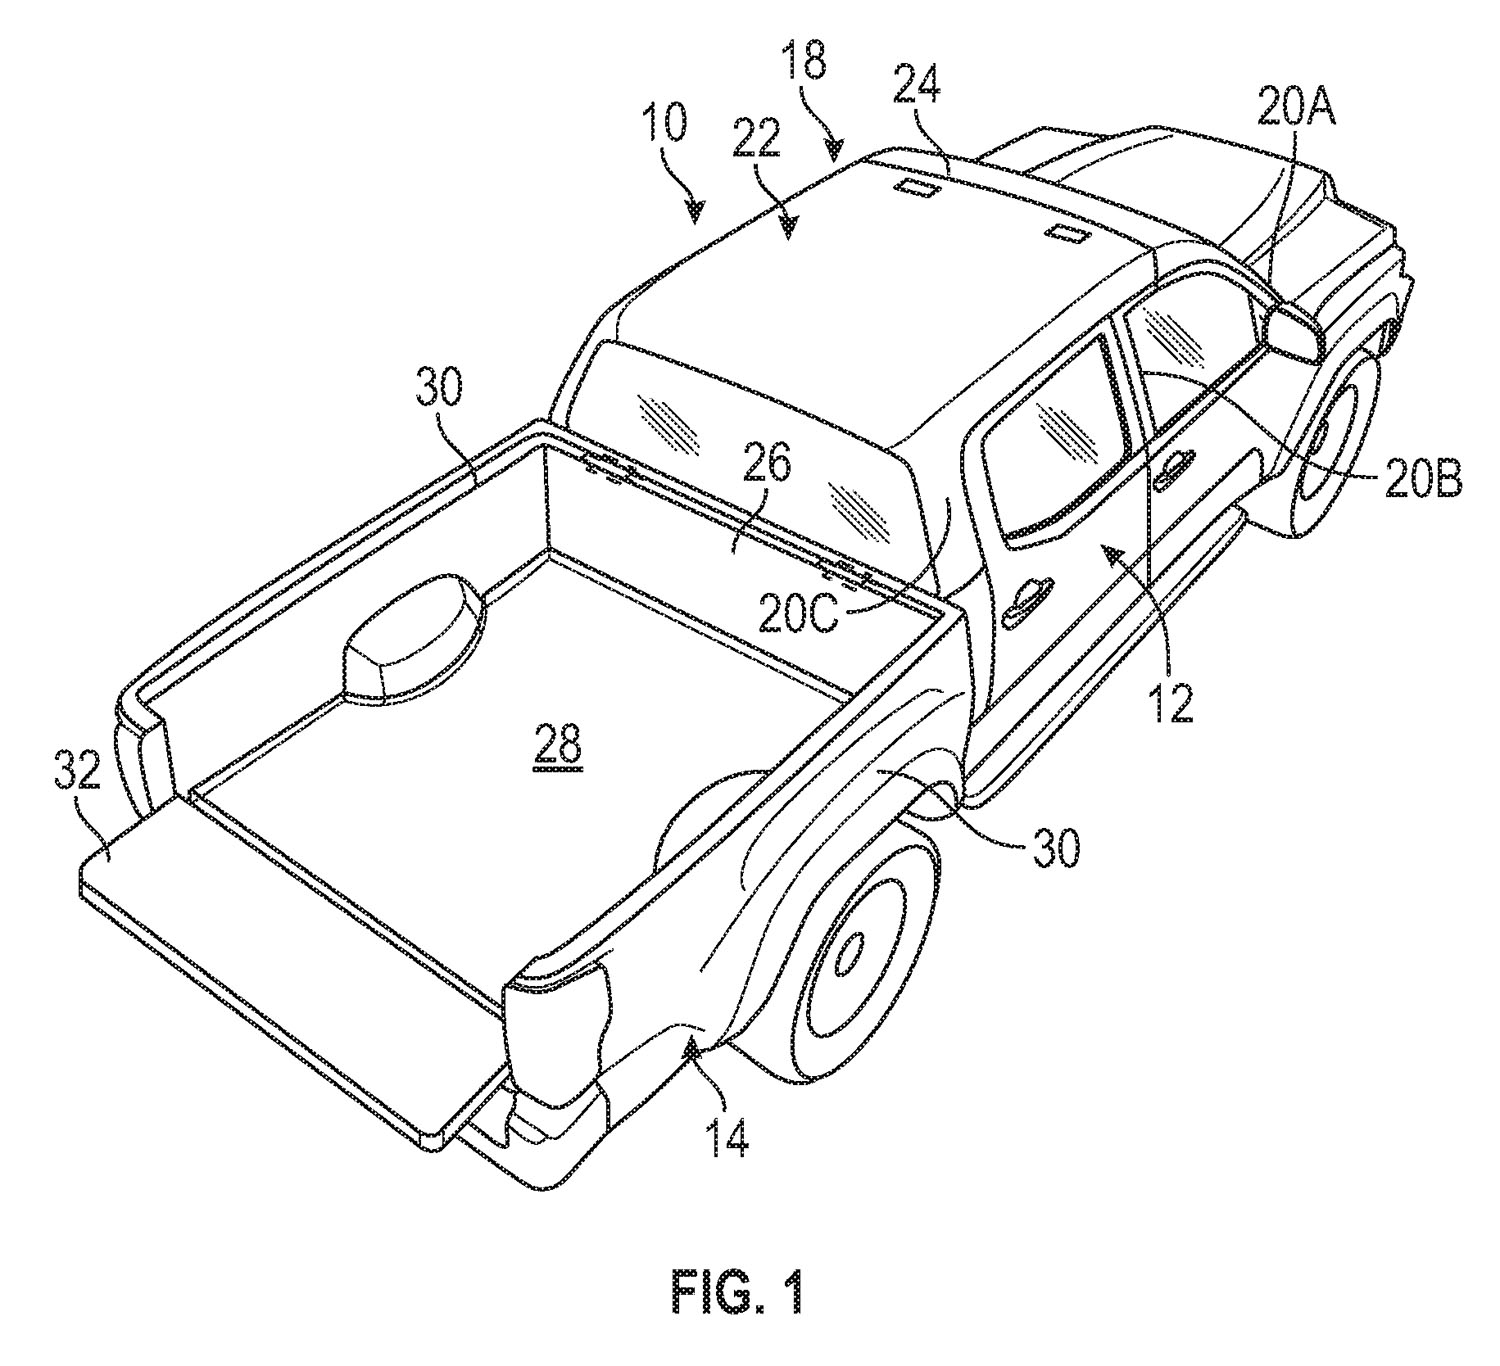 Ford-Convertible-Truck-Top-Patent-006.jpg